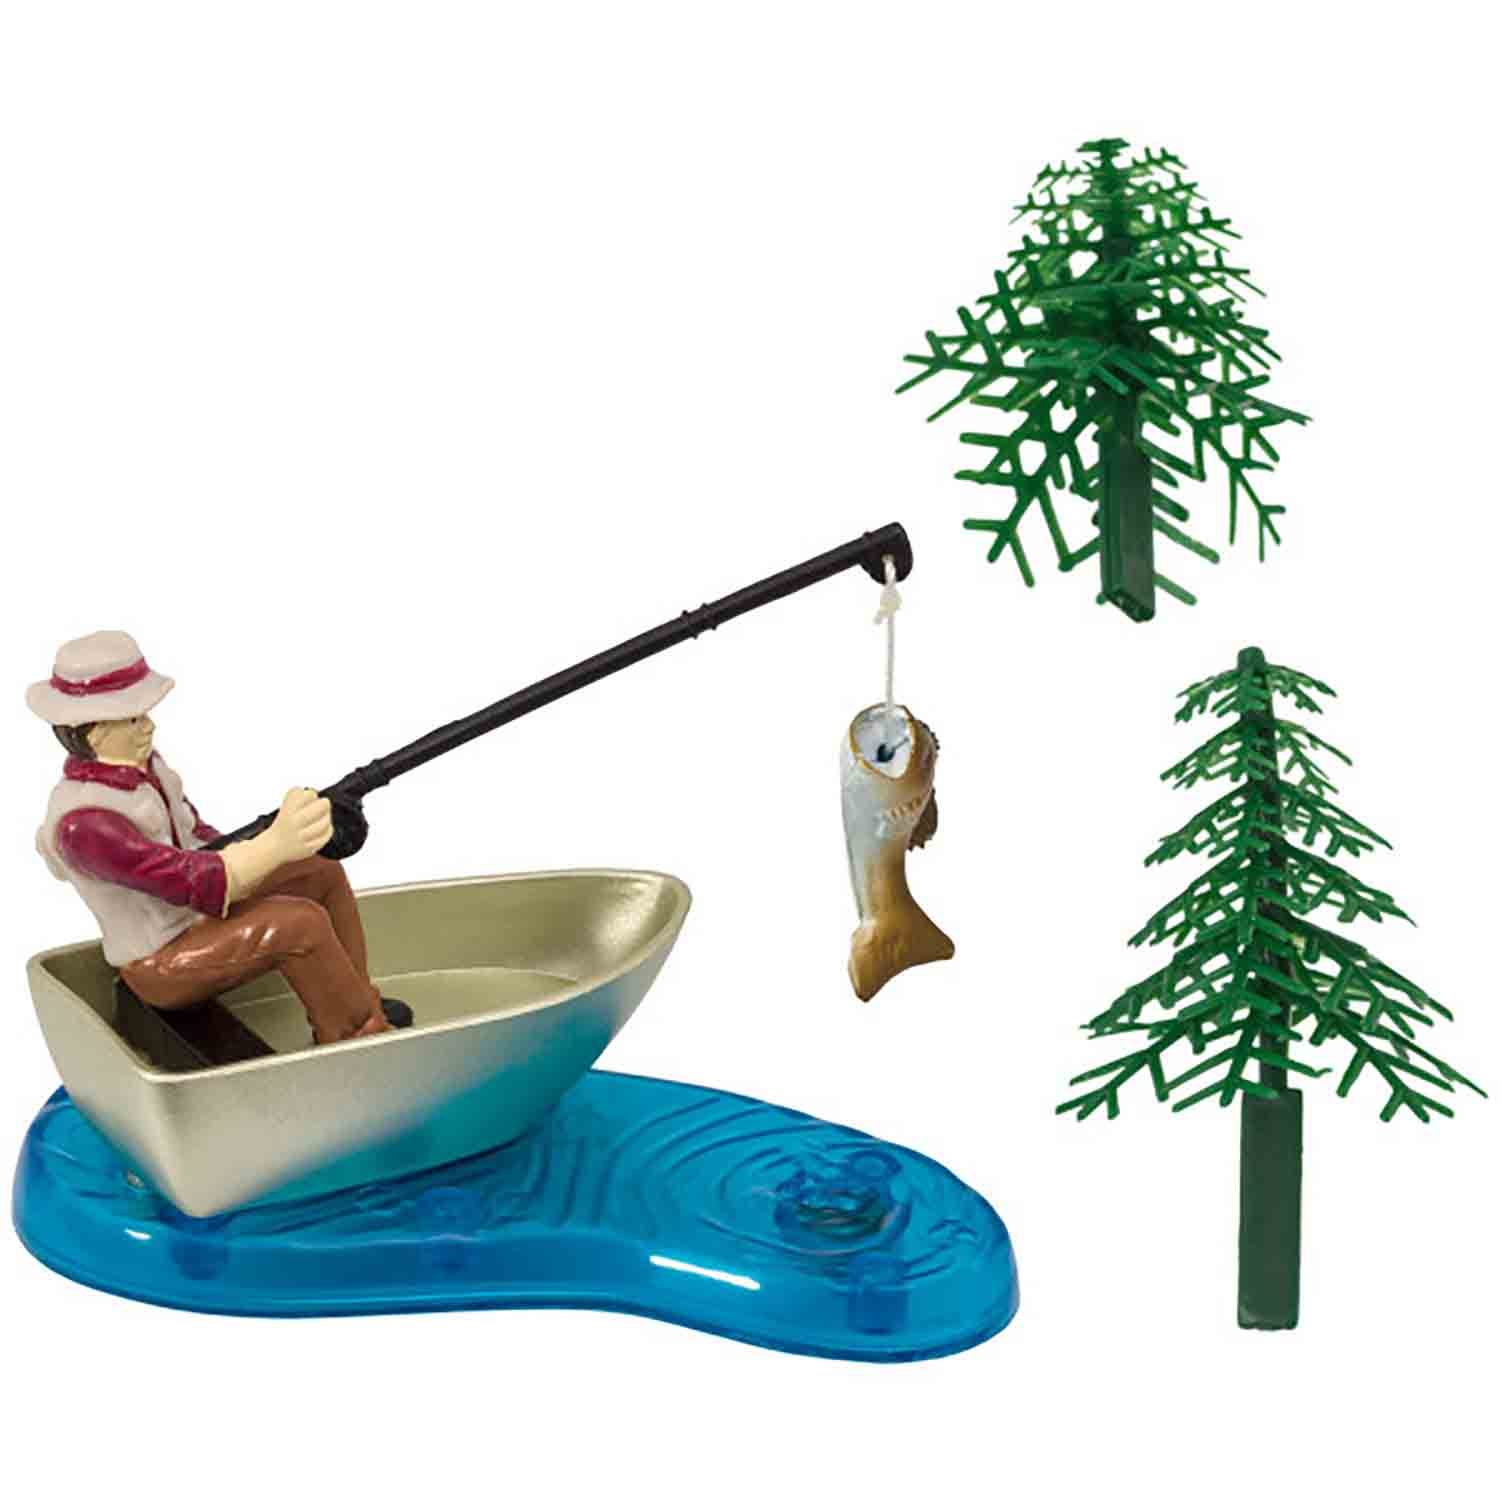 Fisherman Cake Decoration Set